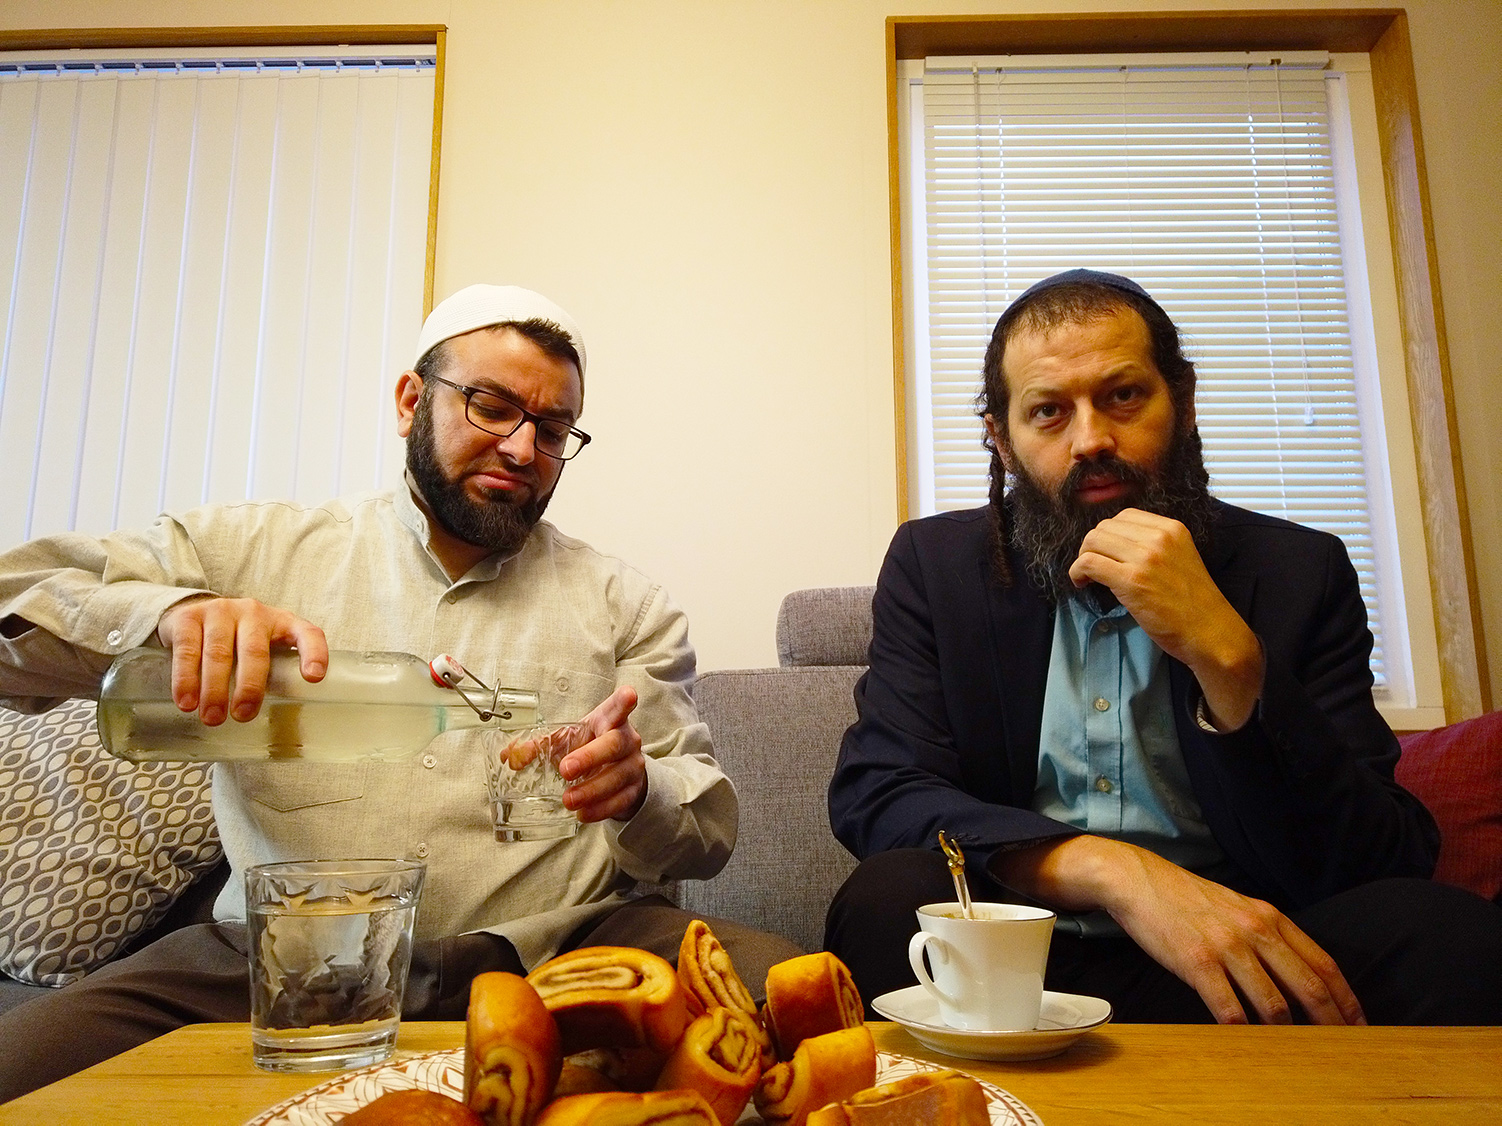 Imam Salahuddin Barakat and Rabbi Moshe David HaCohen in the Swedish city of Malmö. Annika Hernroth-Rothstein.